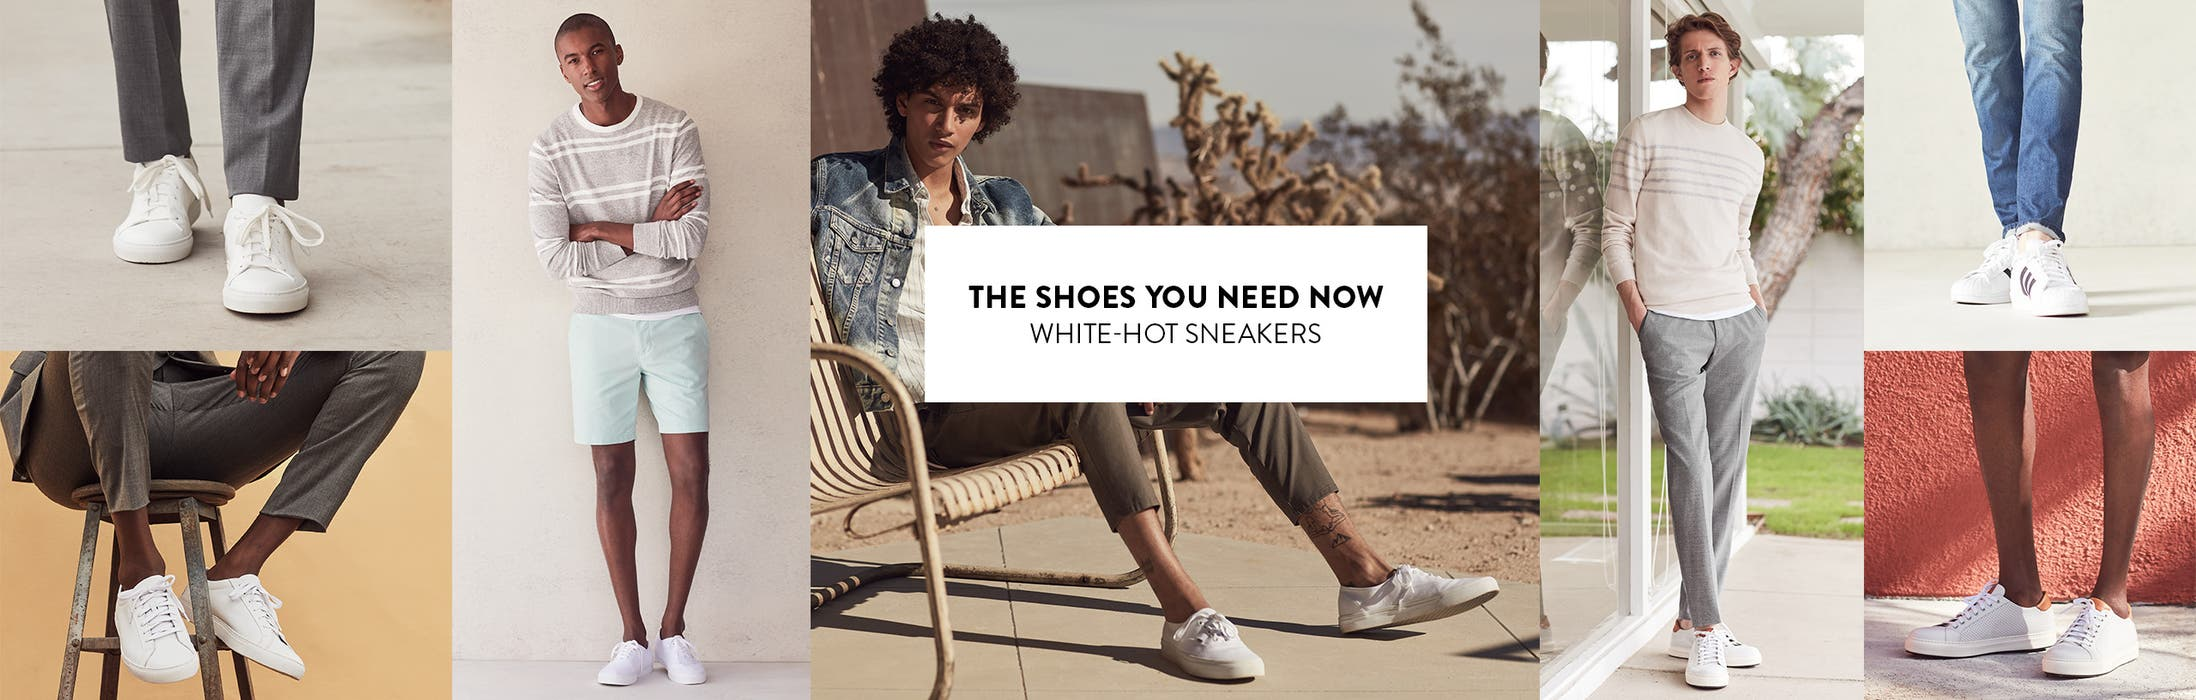 The shoes you need now: white-hot sneakers.